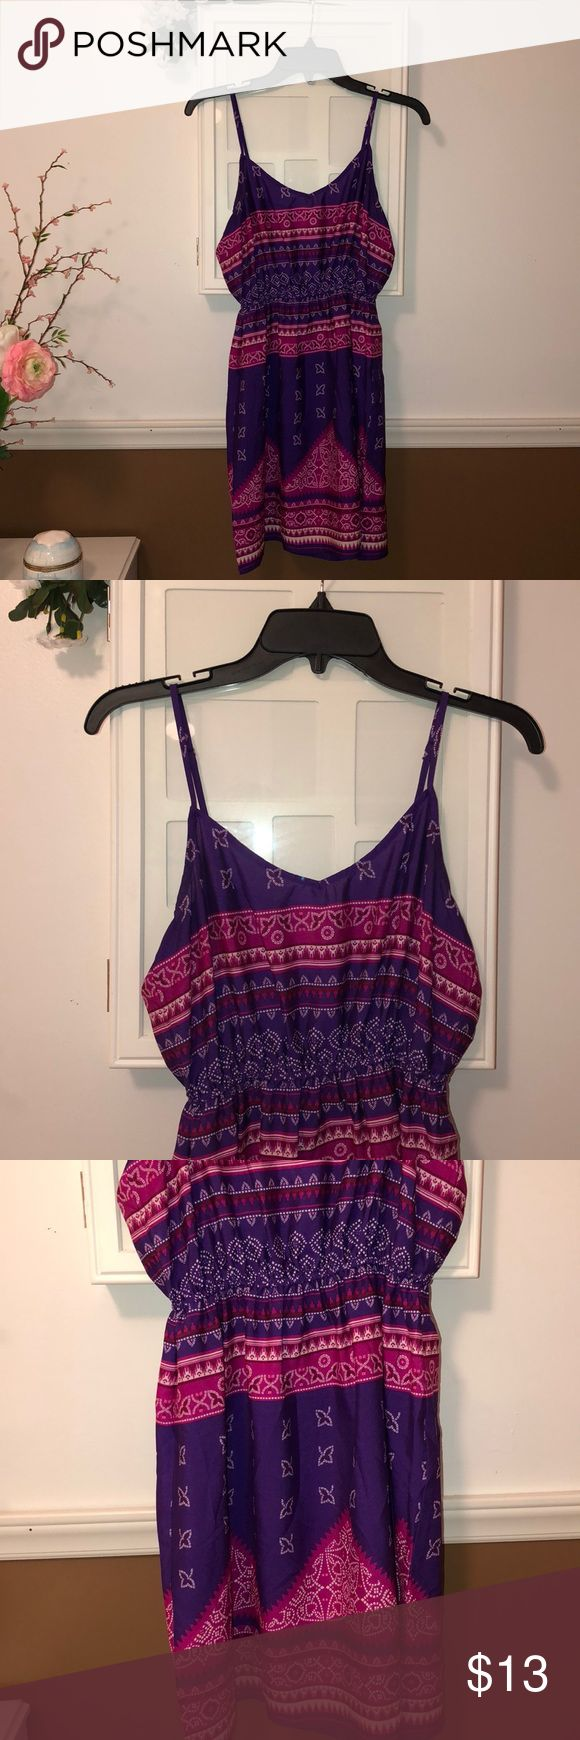 pink and purple sundress pink and purple sundress, adjustable straps, winches at the waist, size S, never worn Dresses